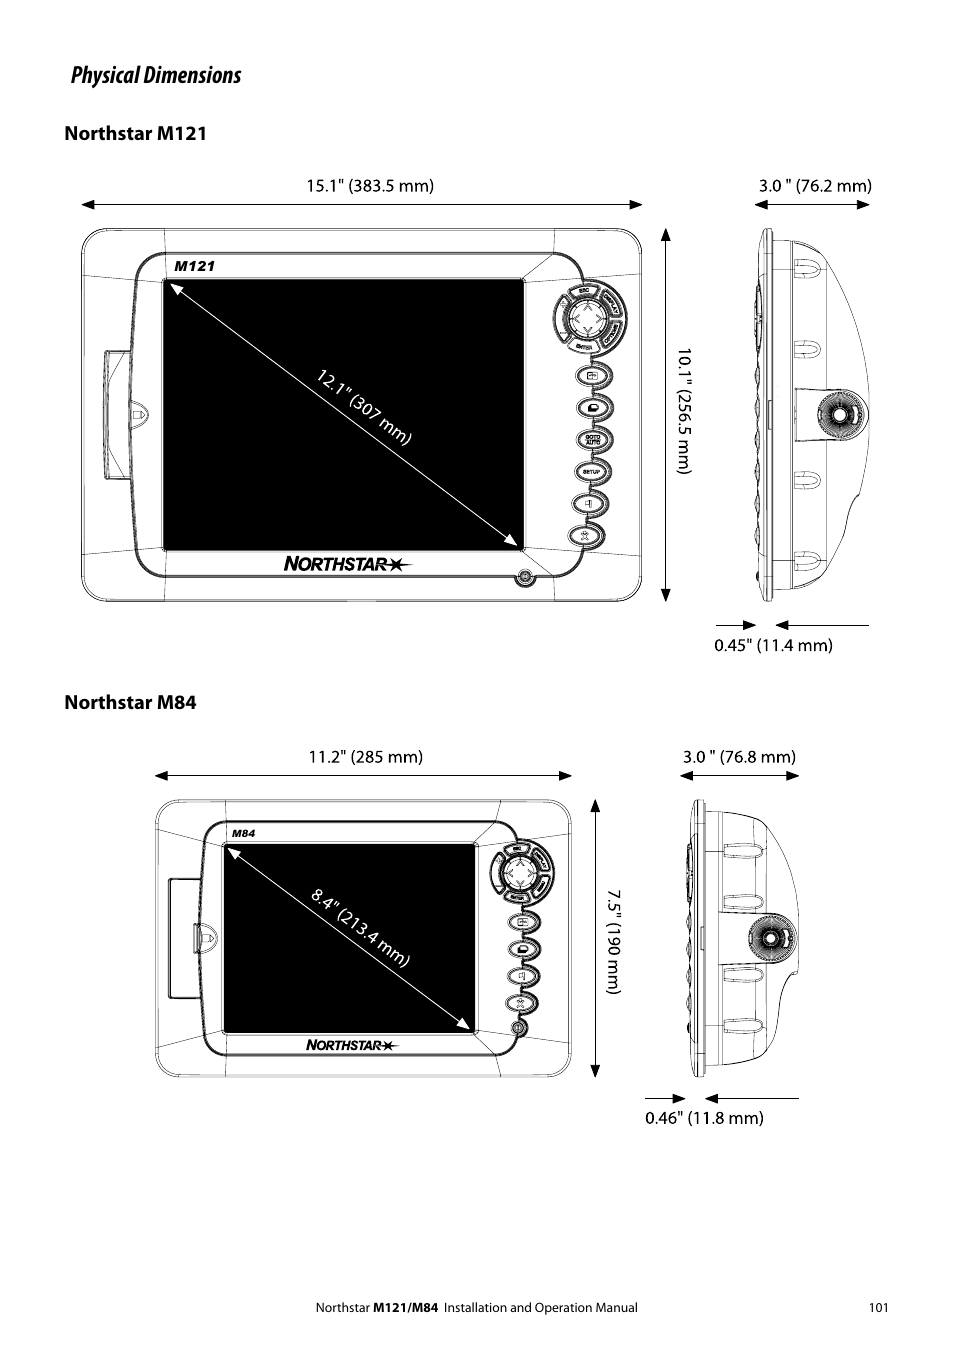 Physical dimensions, Northstar m121, Northstar m84 | NorthStar Navigation  Multi-Function Unit M84 User Manual | Page 102 / 113